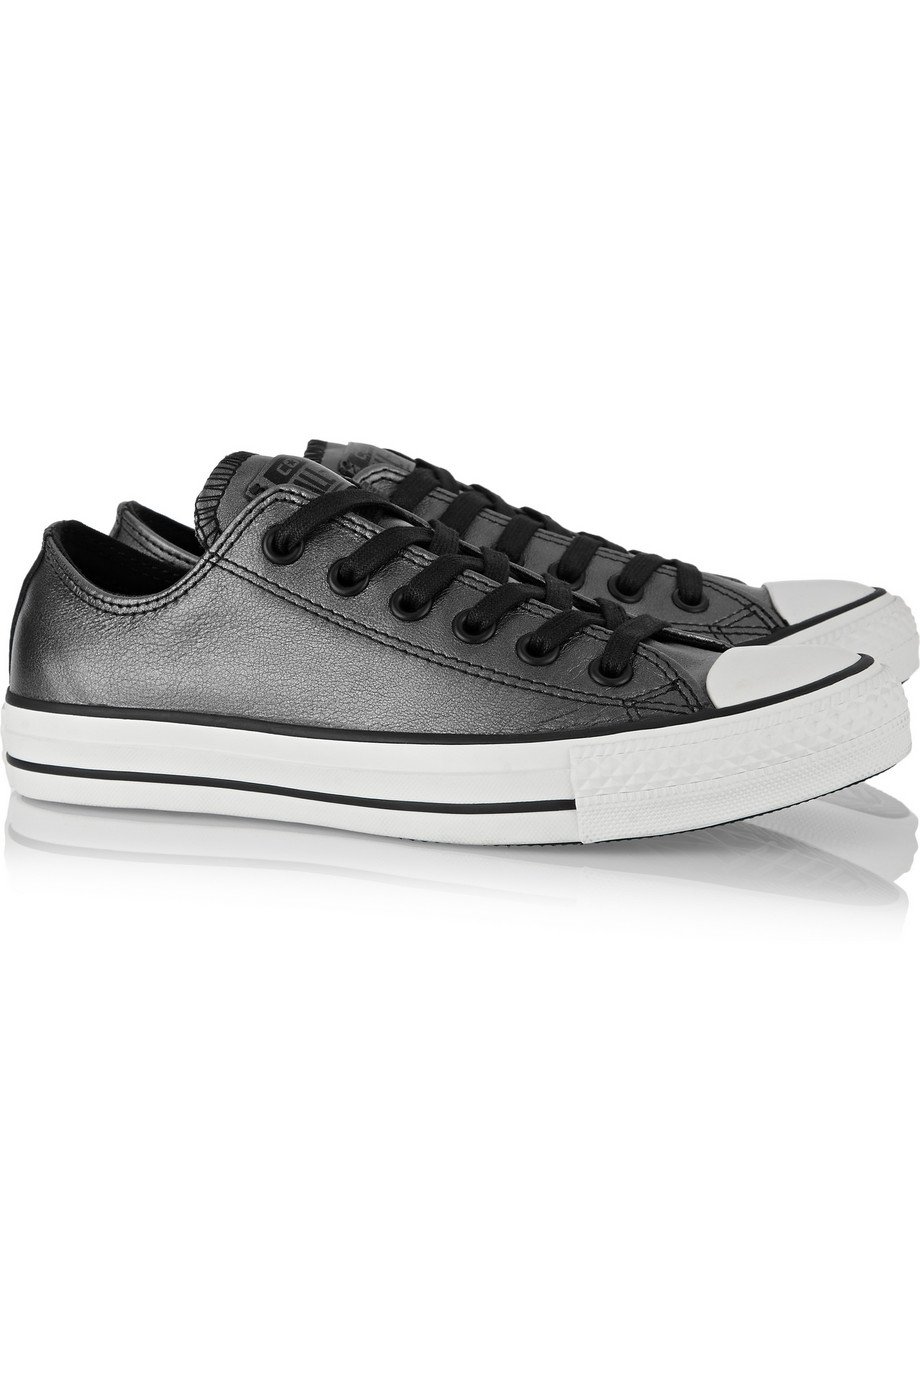 Converse All Star Metallic Leather Sneakers in Grey